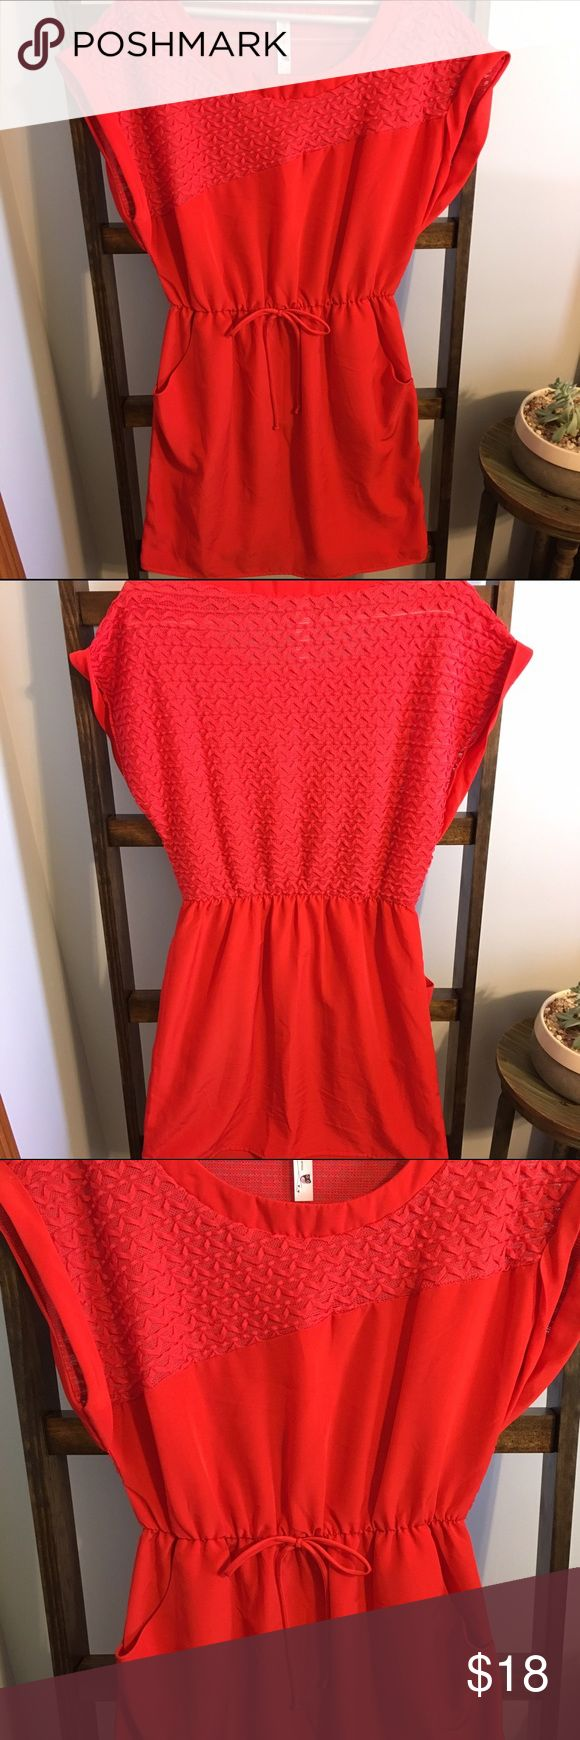 Super adorable red dress! Pink Owl is a Dillard's brand. This super cute dress has pockets and can be dressed up or down. Add a blazer for office wear! The fabric is soft and has a sheen to it. More of a red-orange color. Worn 1 time, no signs of wear. Size Large in juniors so it fits like a Medium. Did I mention that it has pockets???  Pink Owl Dresses Mini